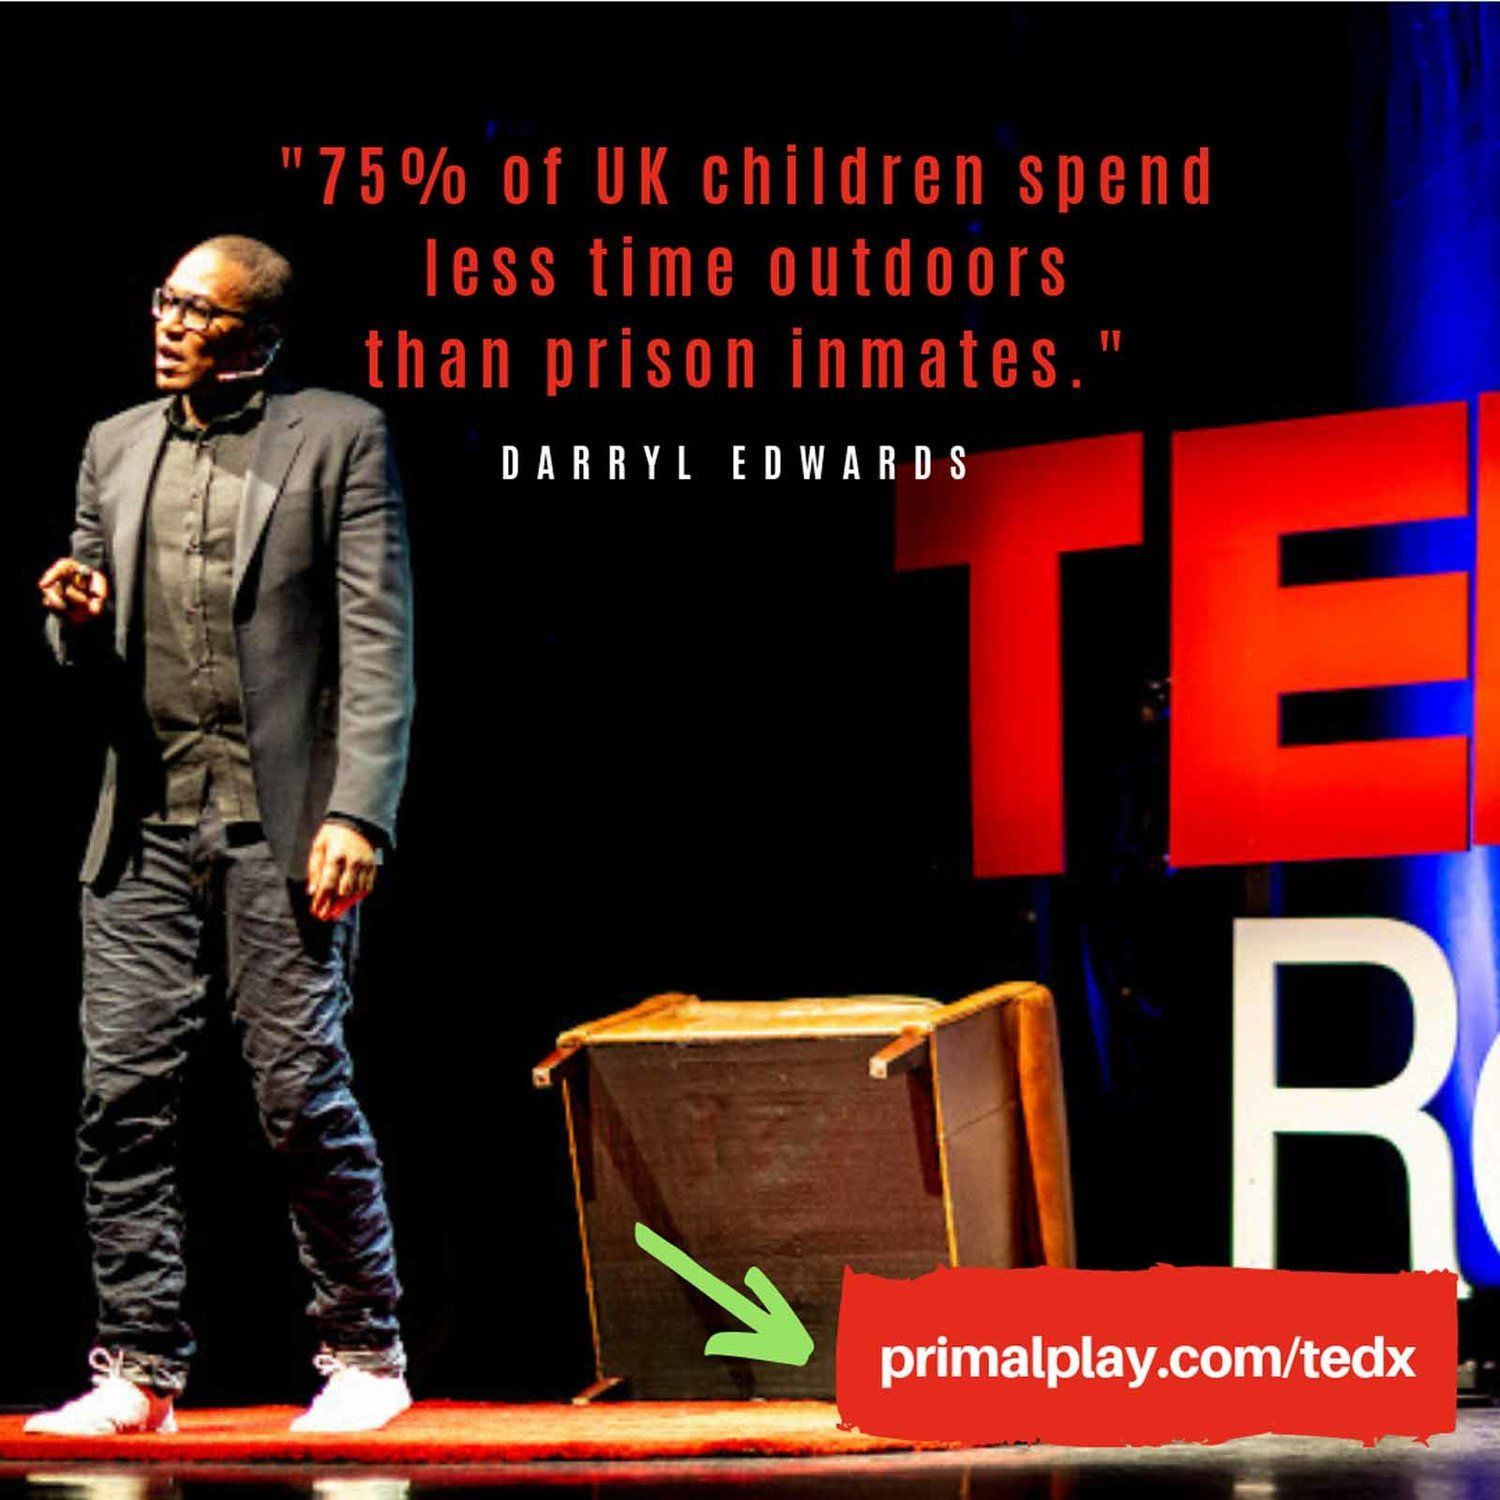 Darryl Edwards Tedx Talk Primal Play Have Fun With Fitness